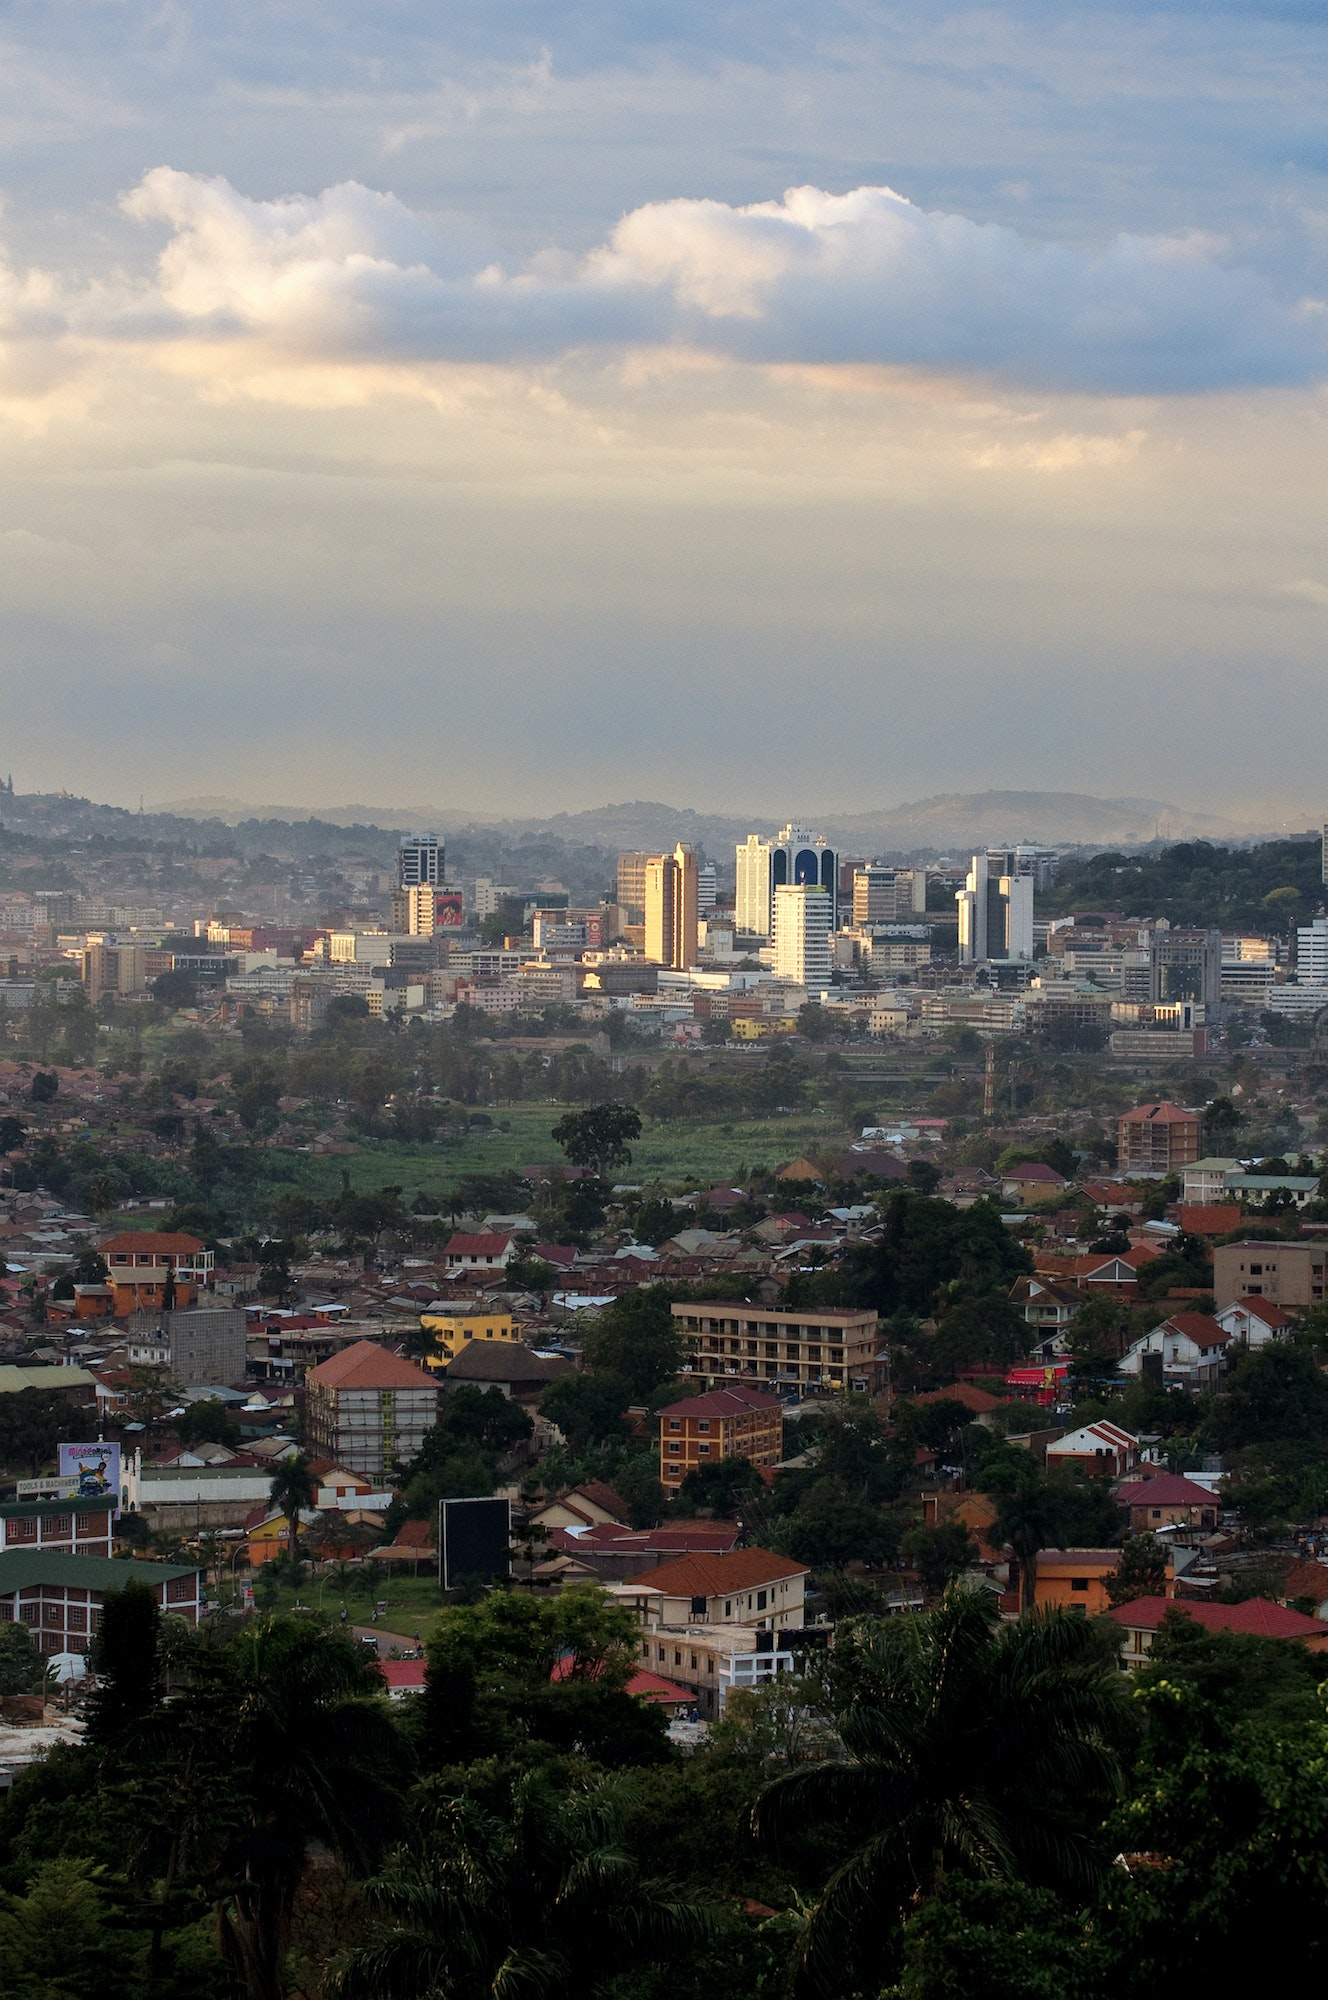 The view of Kampala, Uganda, at sundown.